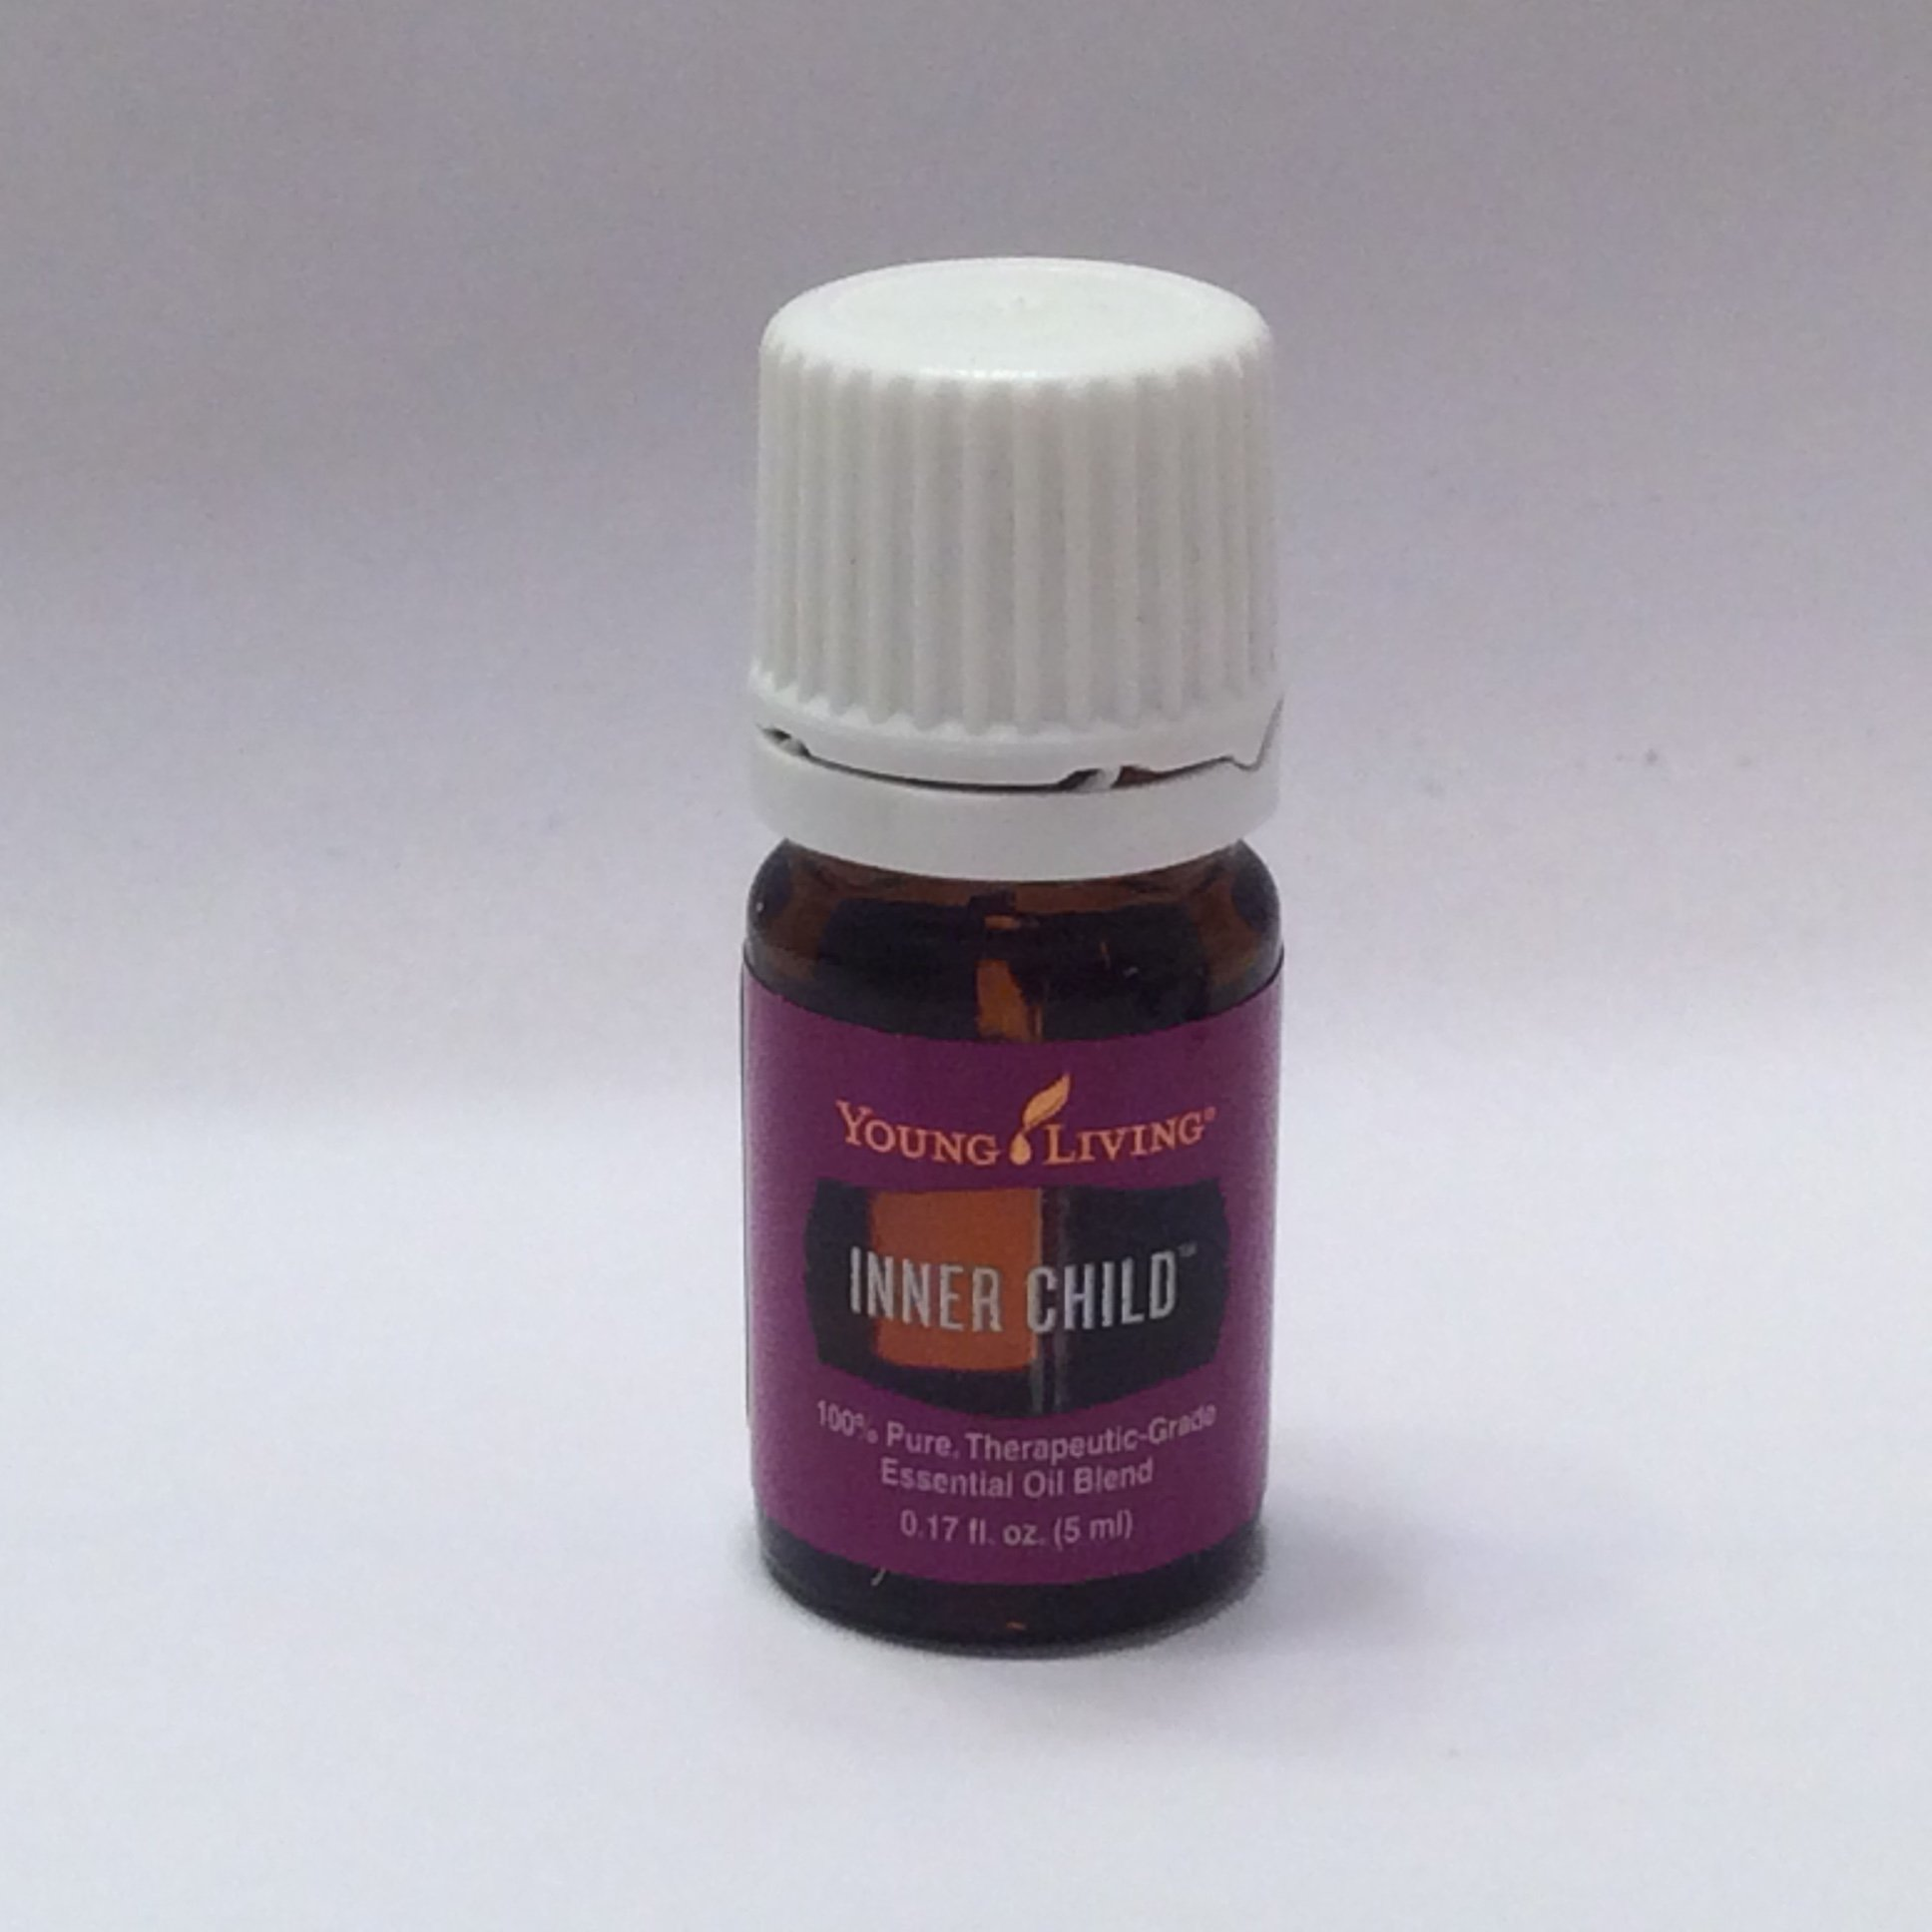 Inner Child 5ml Essential Oil by Young Living Living Essential Oils by Young Living